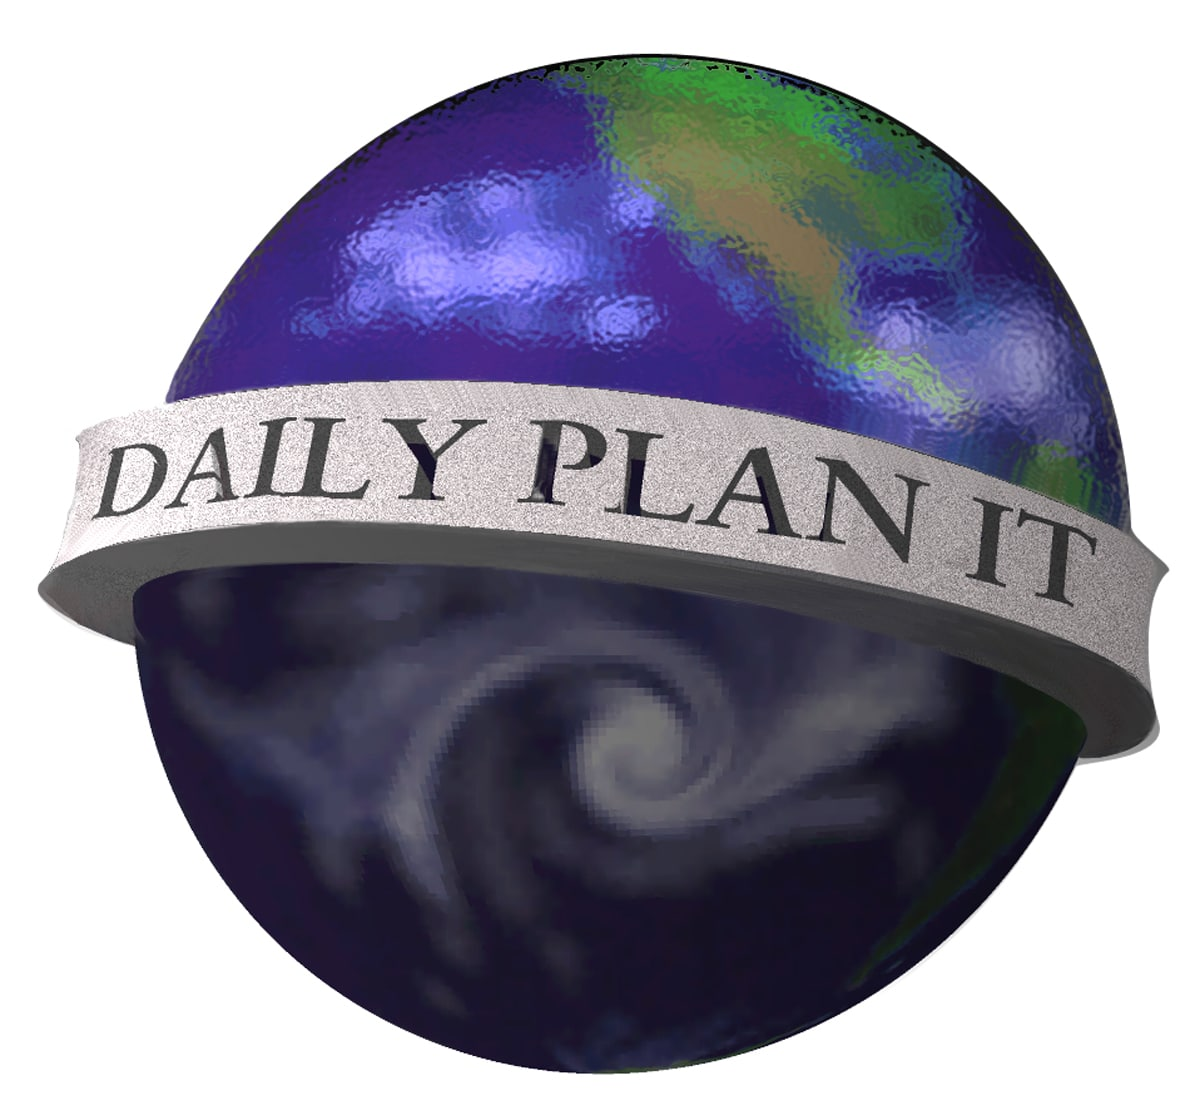 daily plan it logo